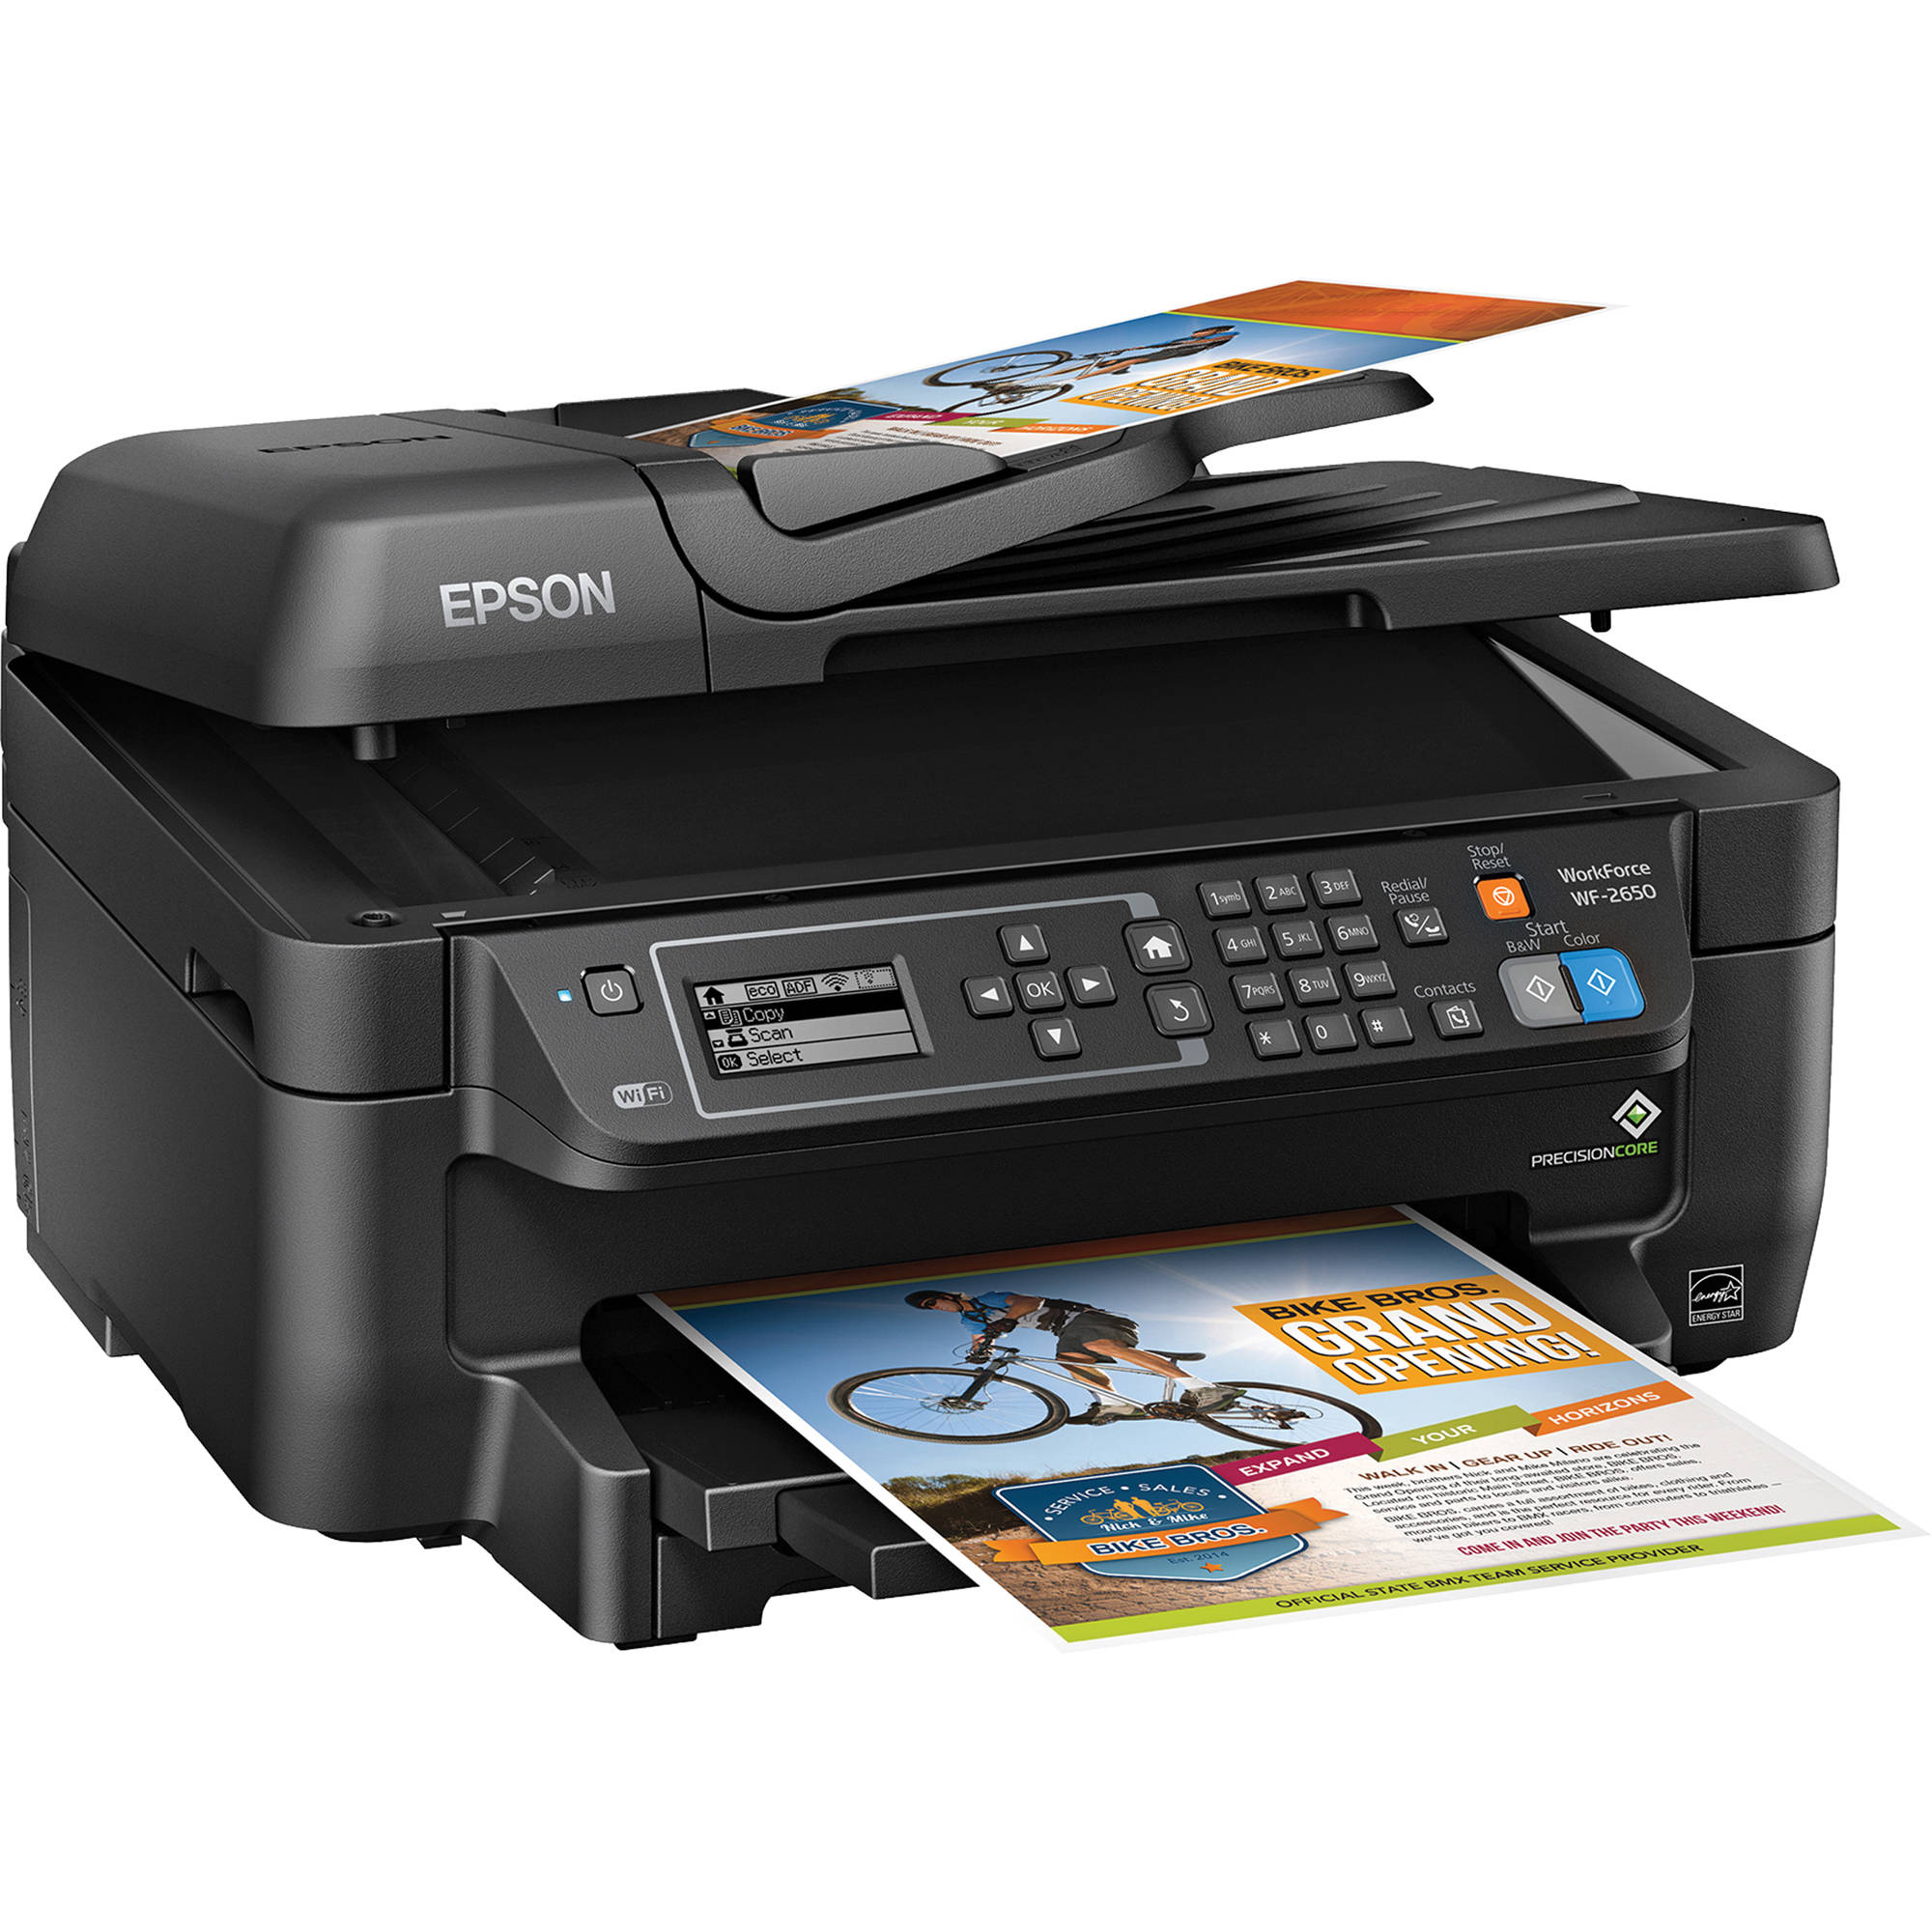 Epson workforce 2650 Download With Key